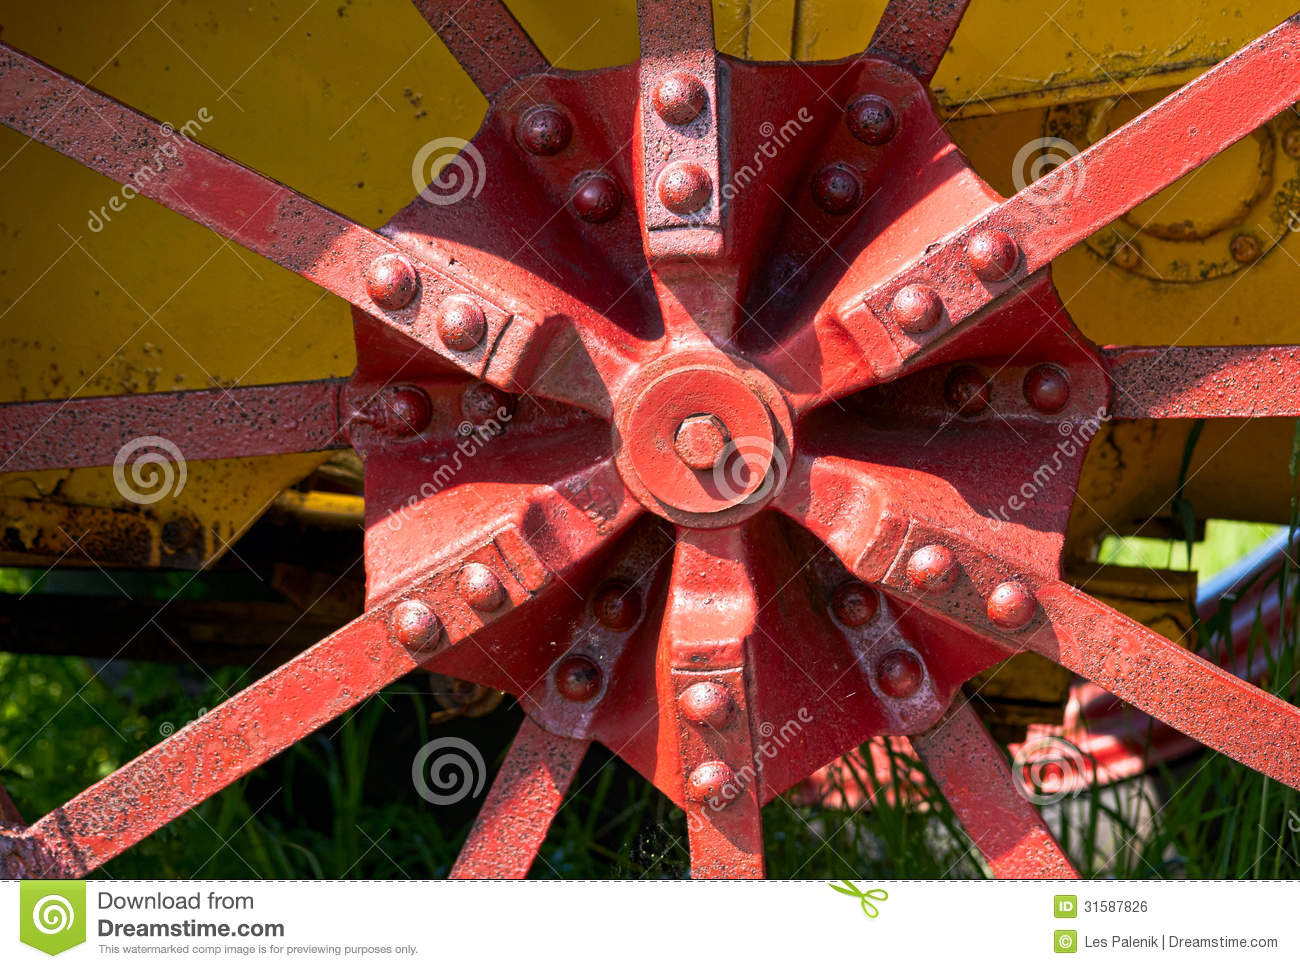 Tractor Wheel Person : Old tractor wheel royalty free stock image